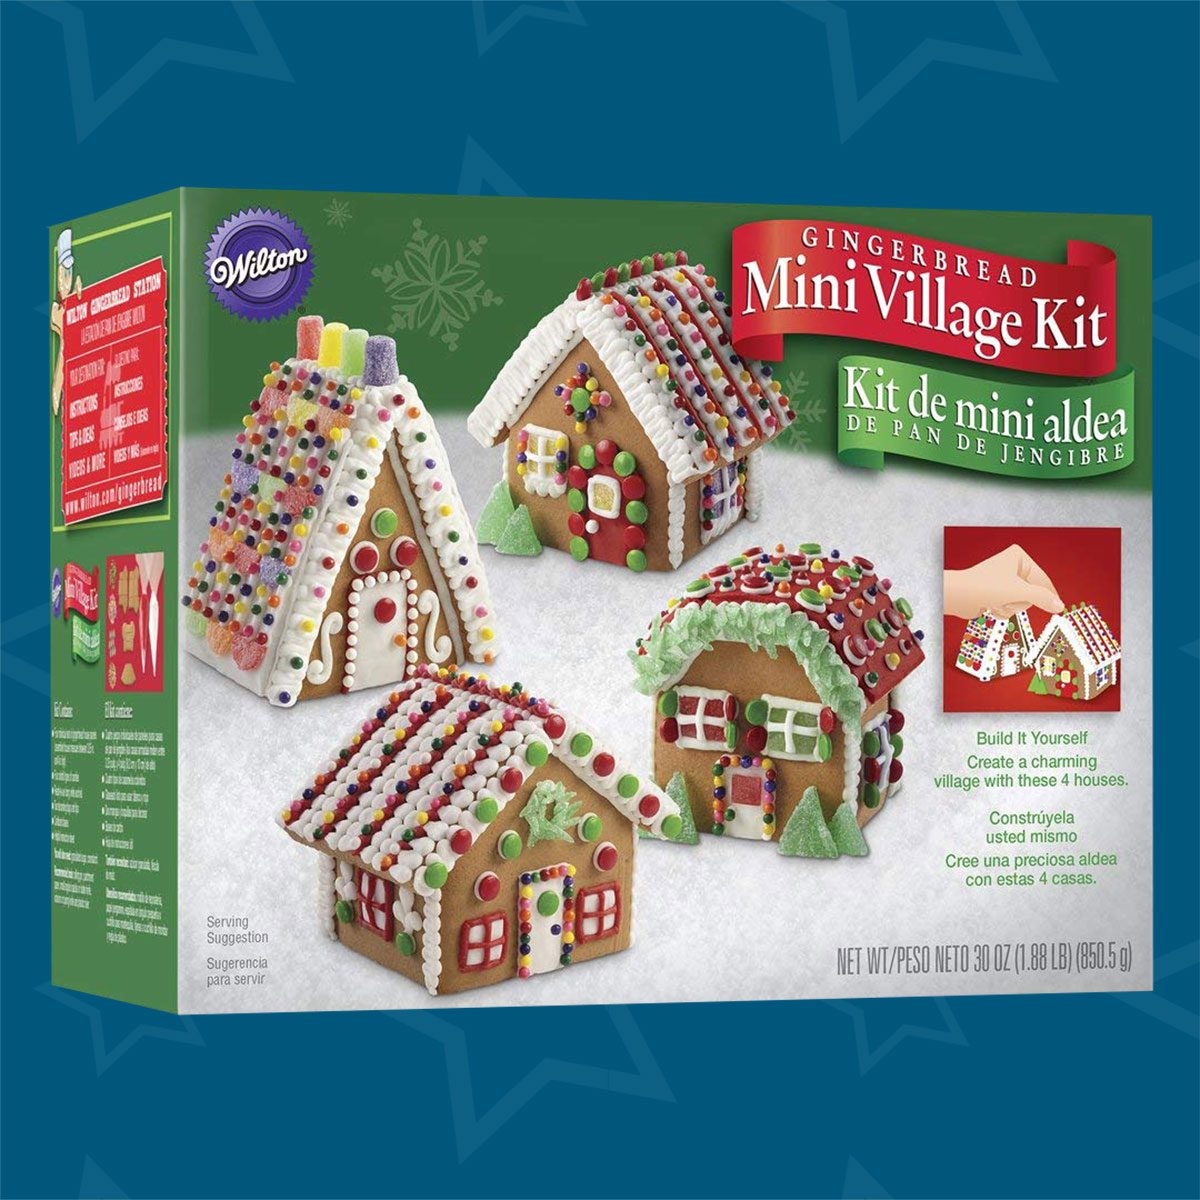 Christmas Gingerbread House Kit.The Best Gingerbread House Kits To Buy This Year Taste Of Home